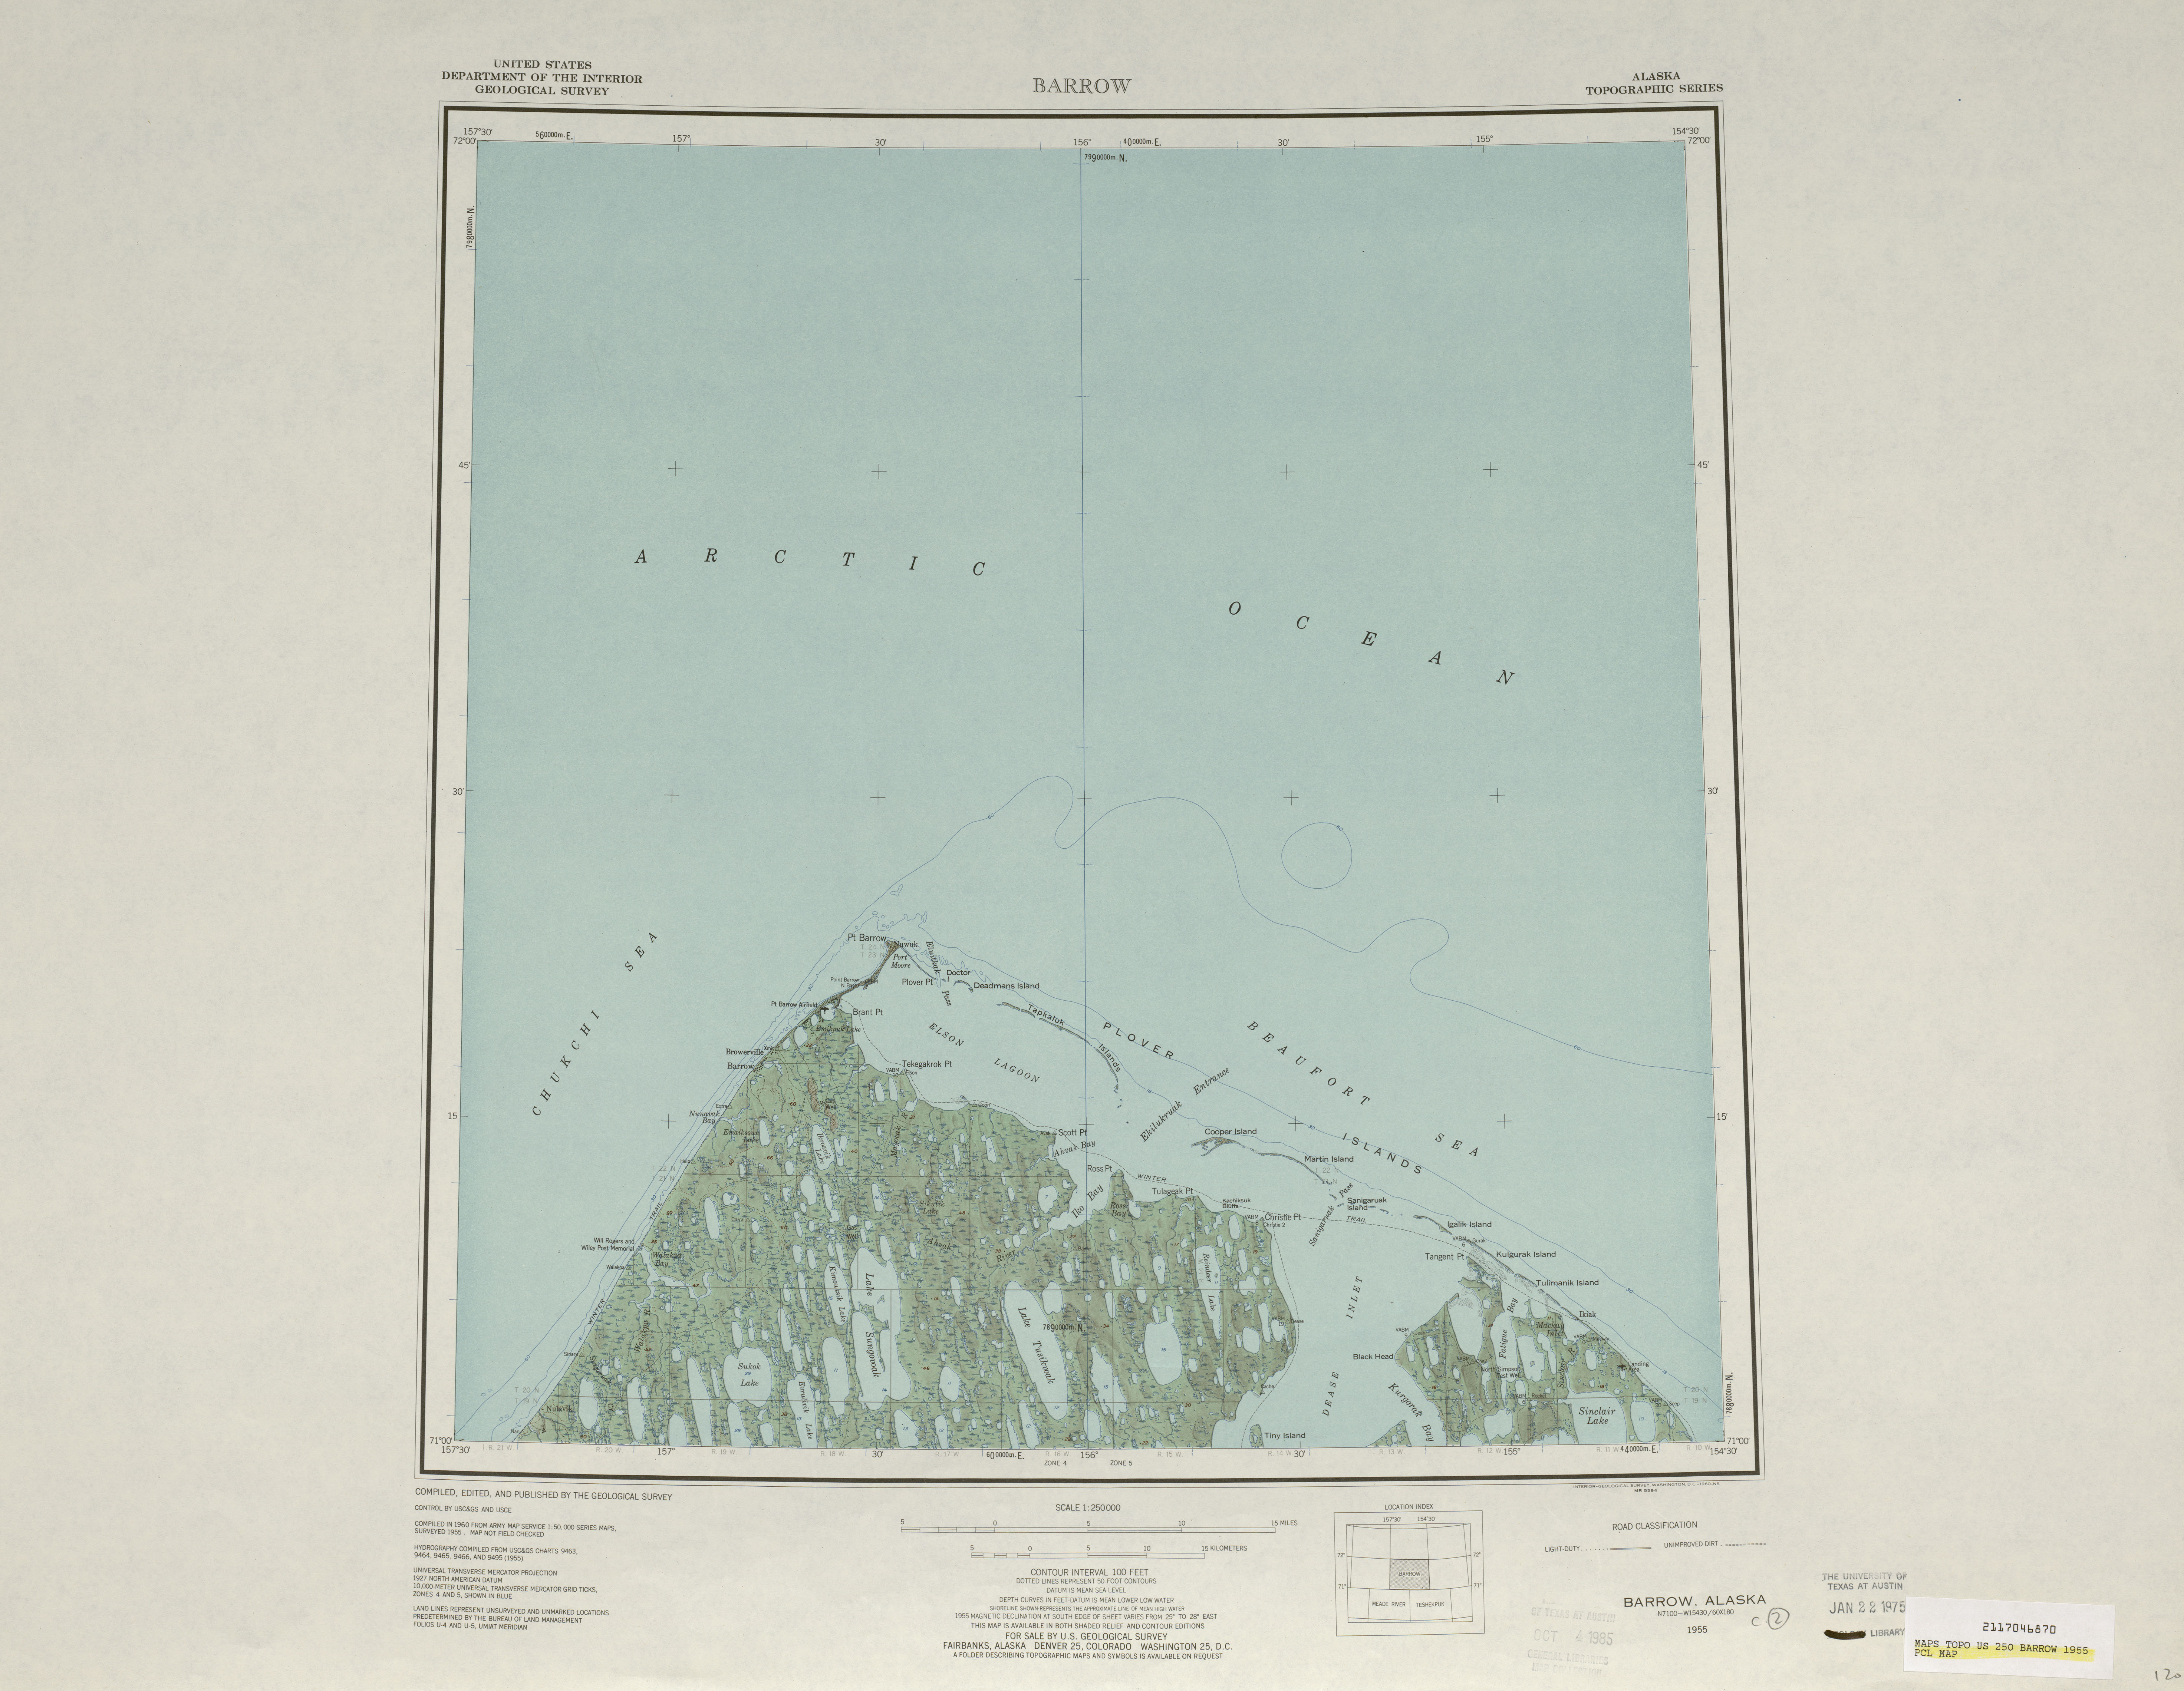 Barrow Shaded Relief Map Sheet, United States 1955